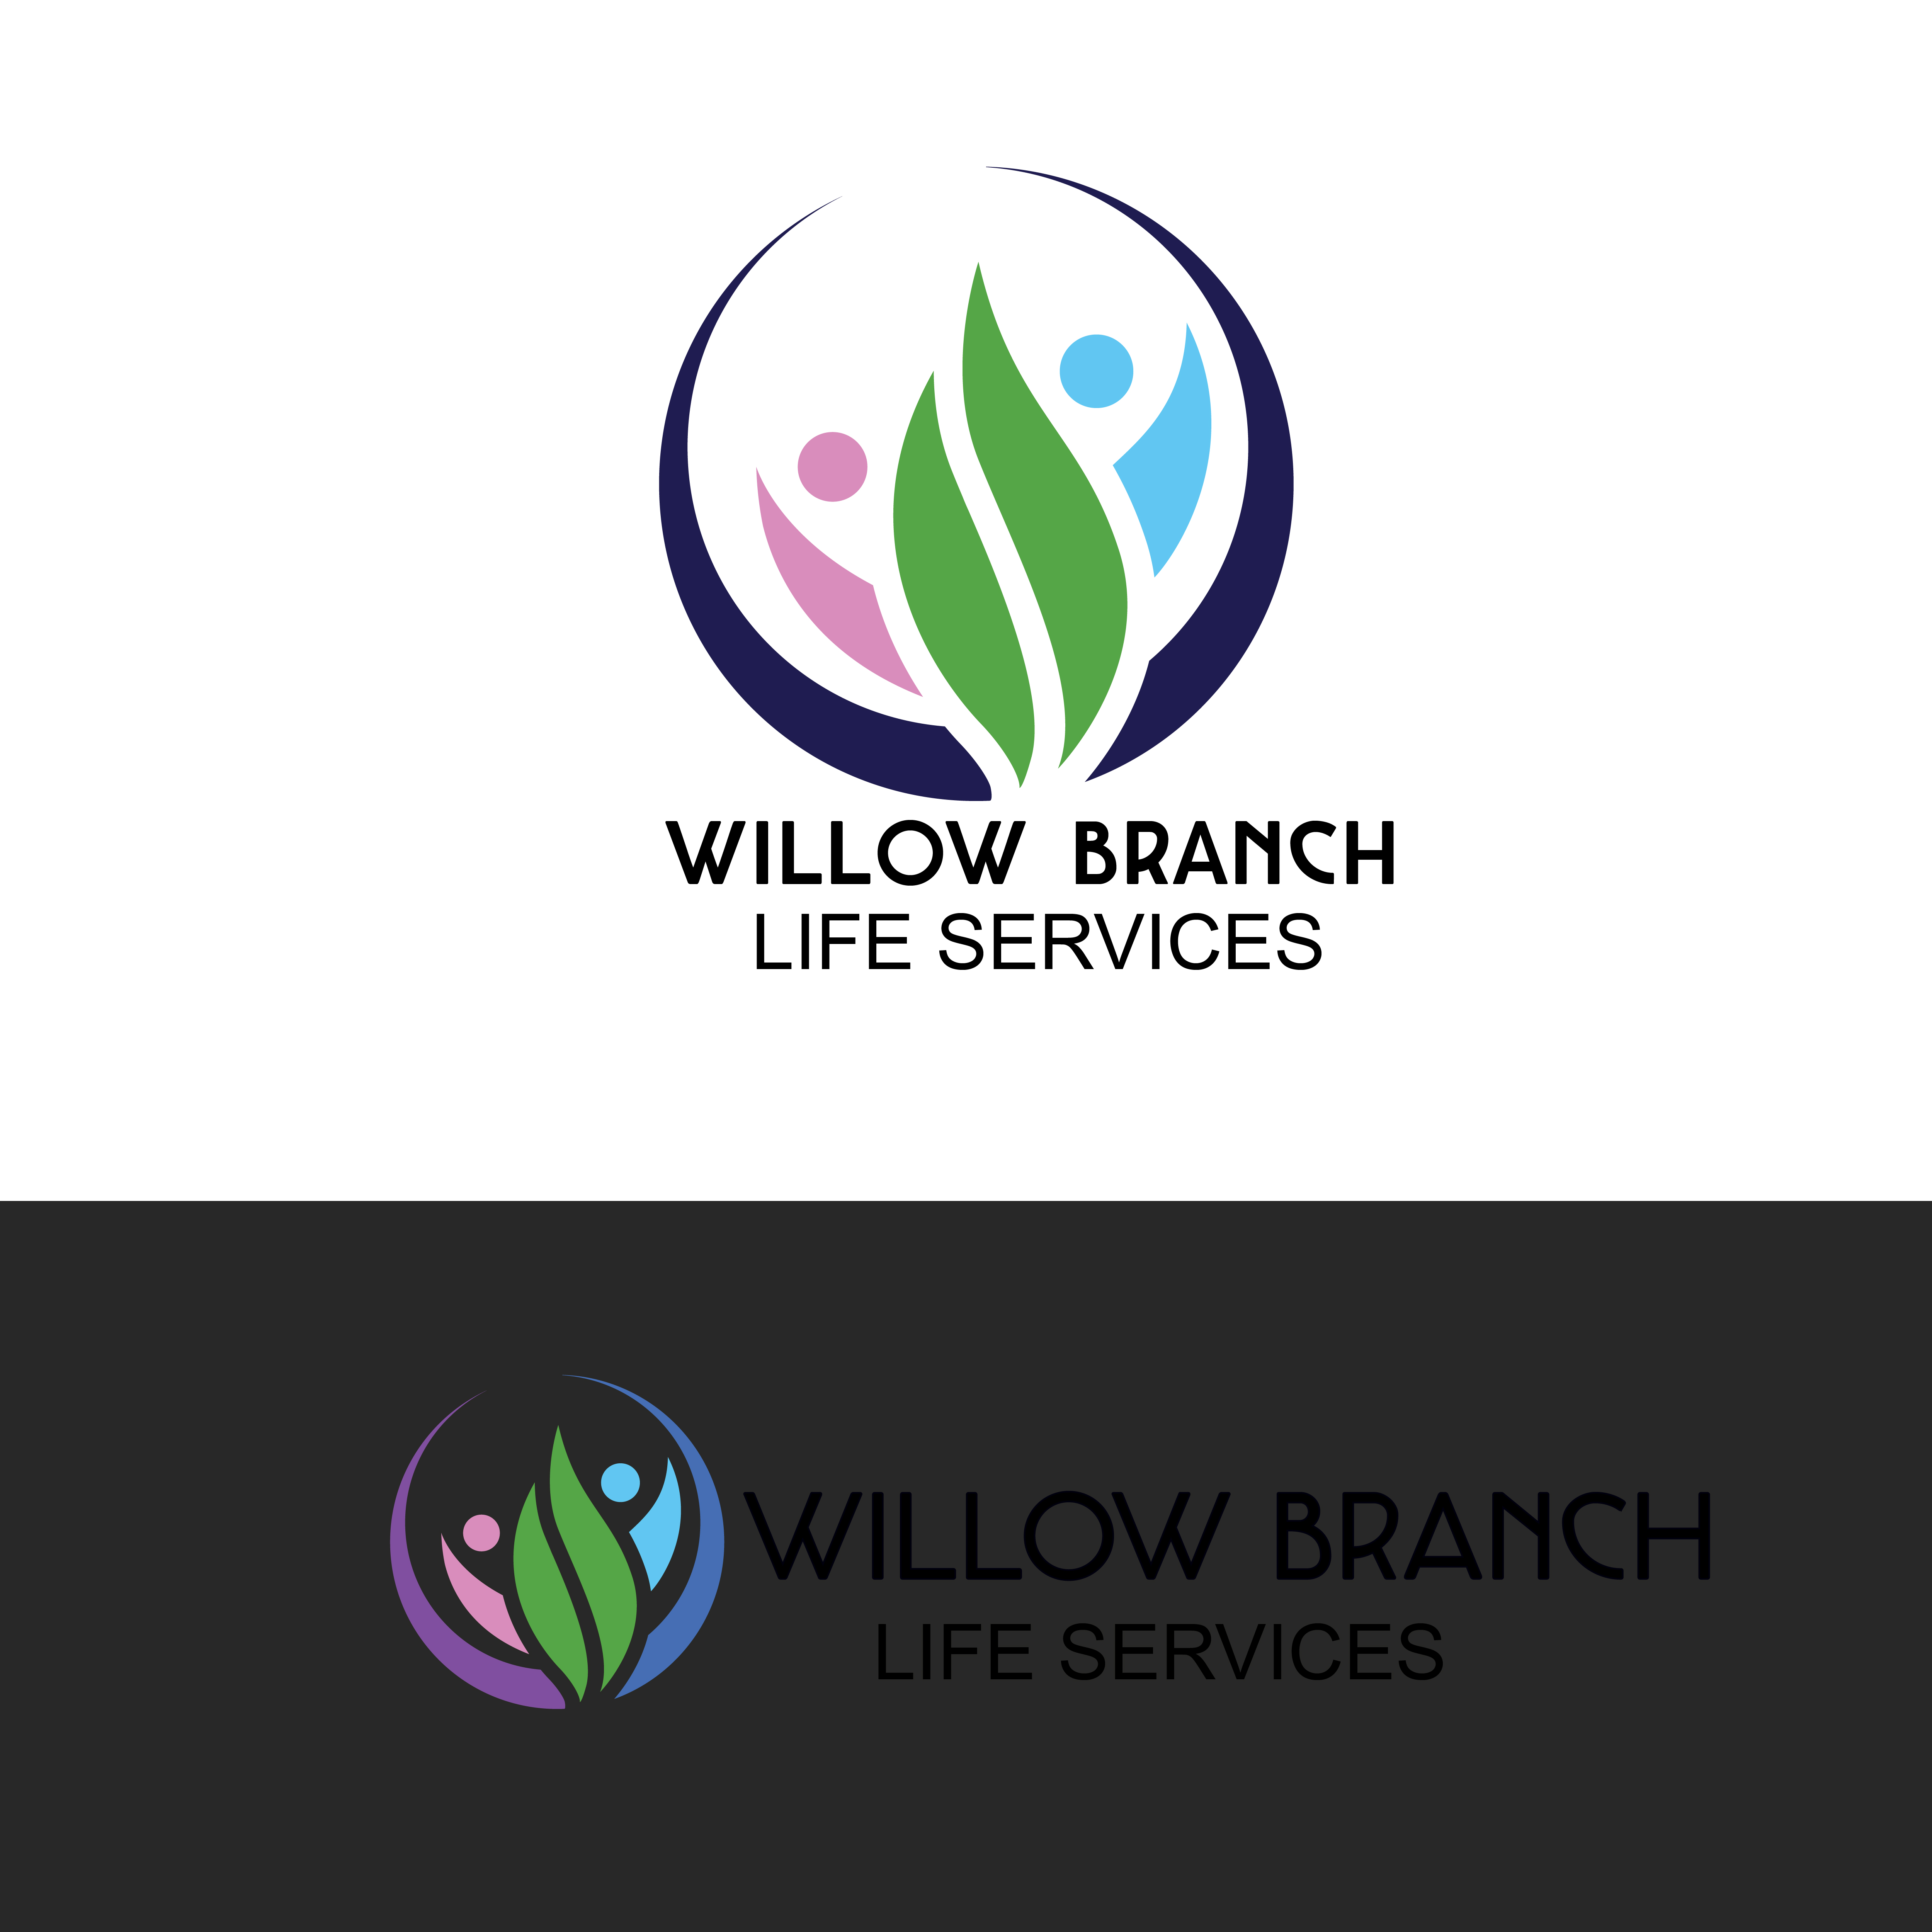 Logo Design by Anum Aamir - Entry No. 158 in the Logo Design Contest Artistic Logo Design for Willow Branch Life Service.